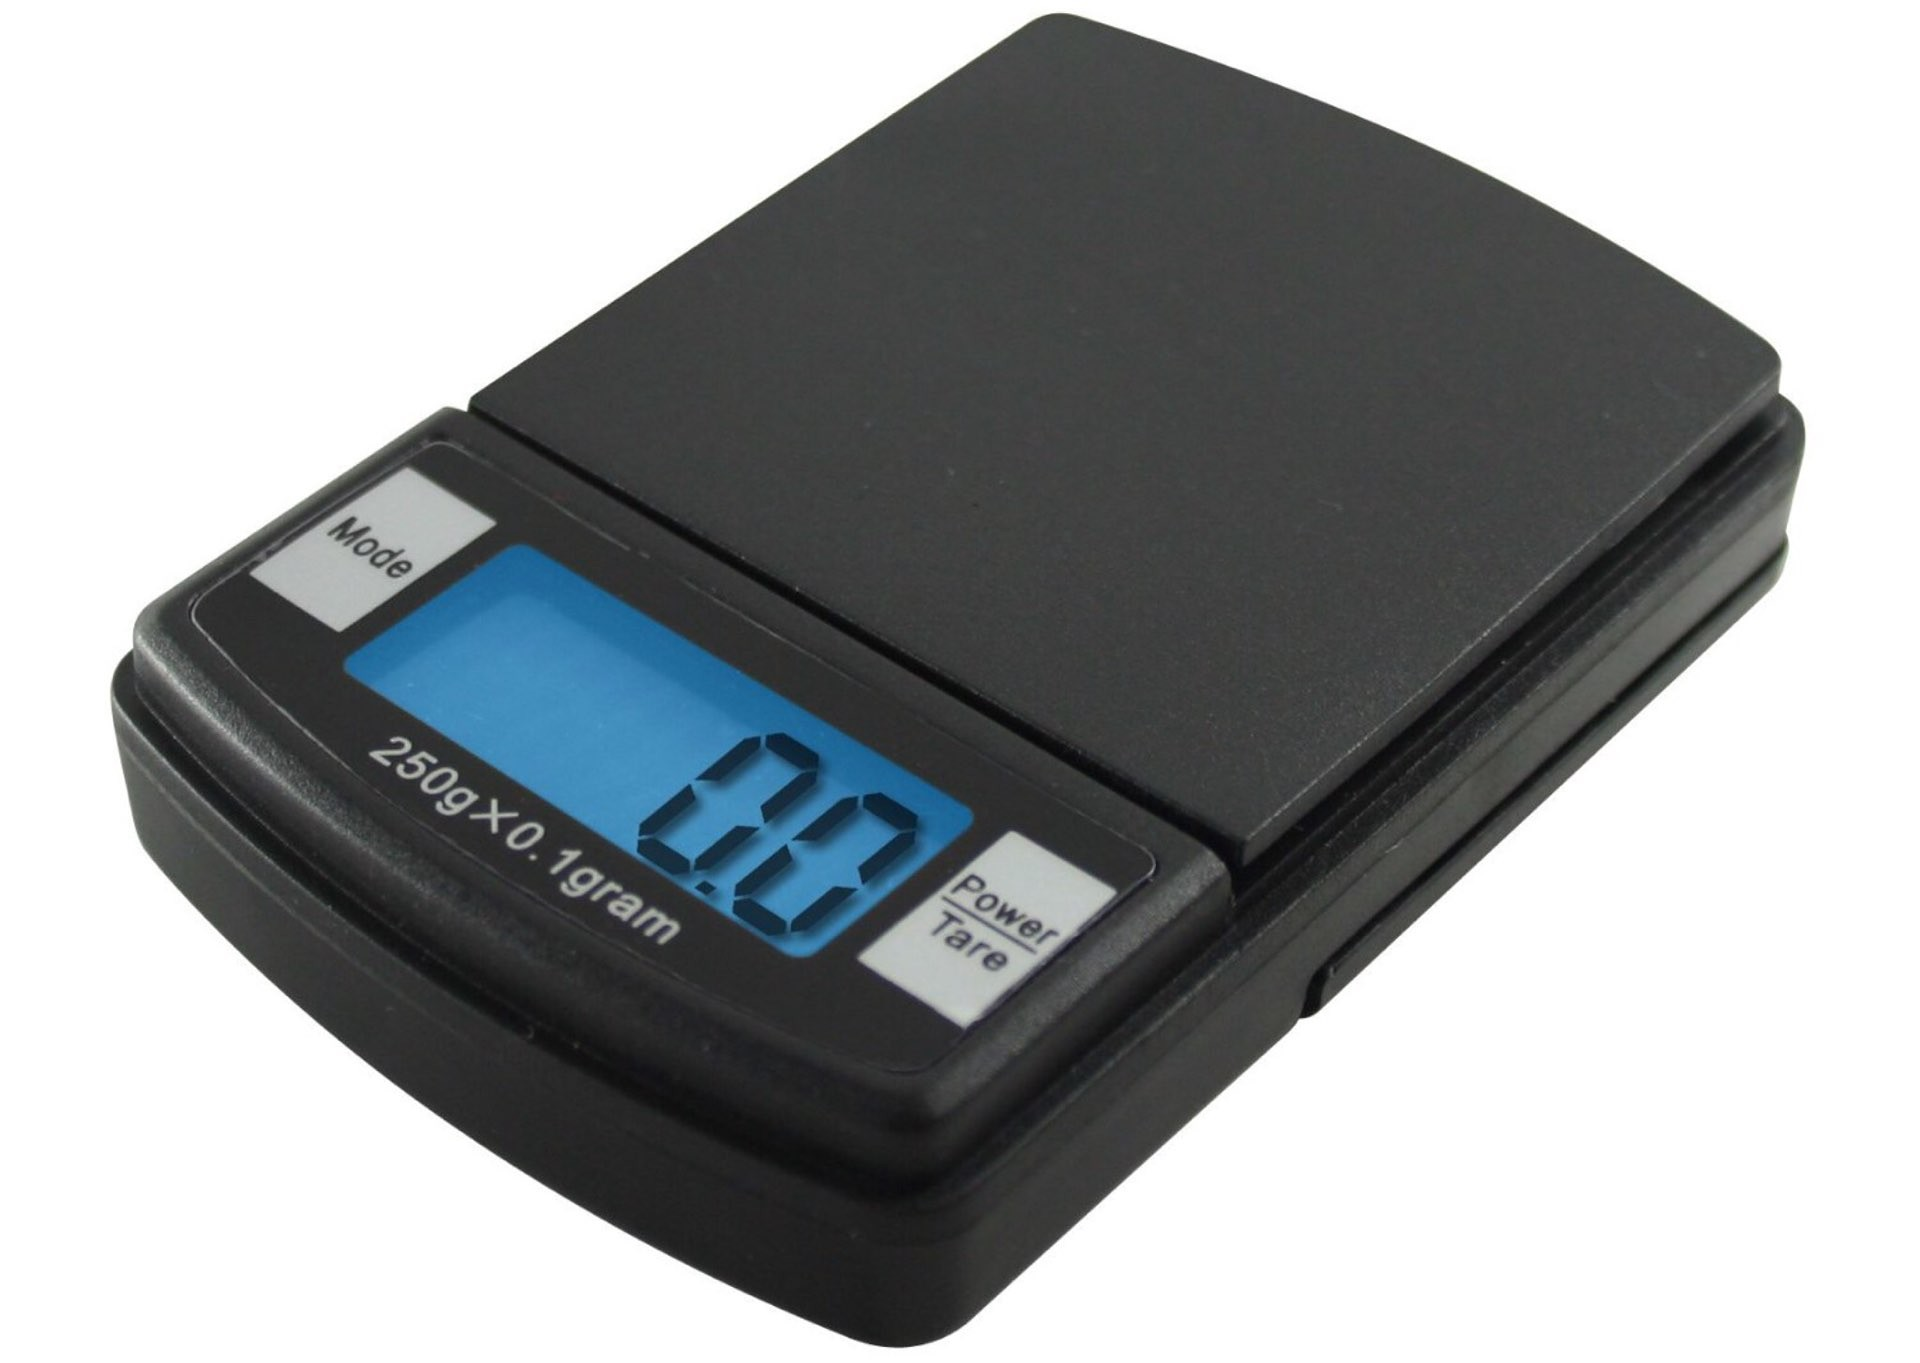 The Fast Weigh pocket scale. ($12)